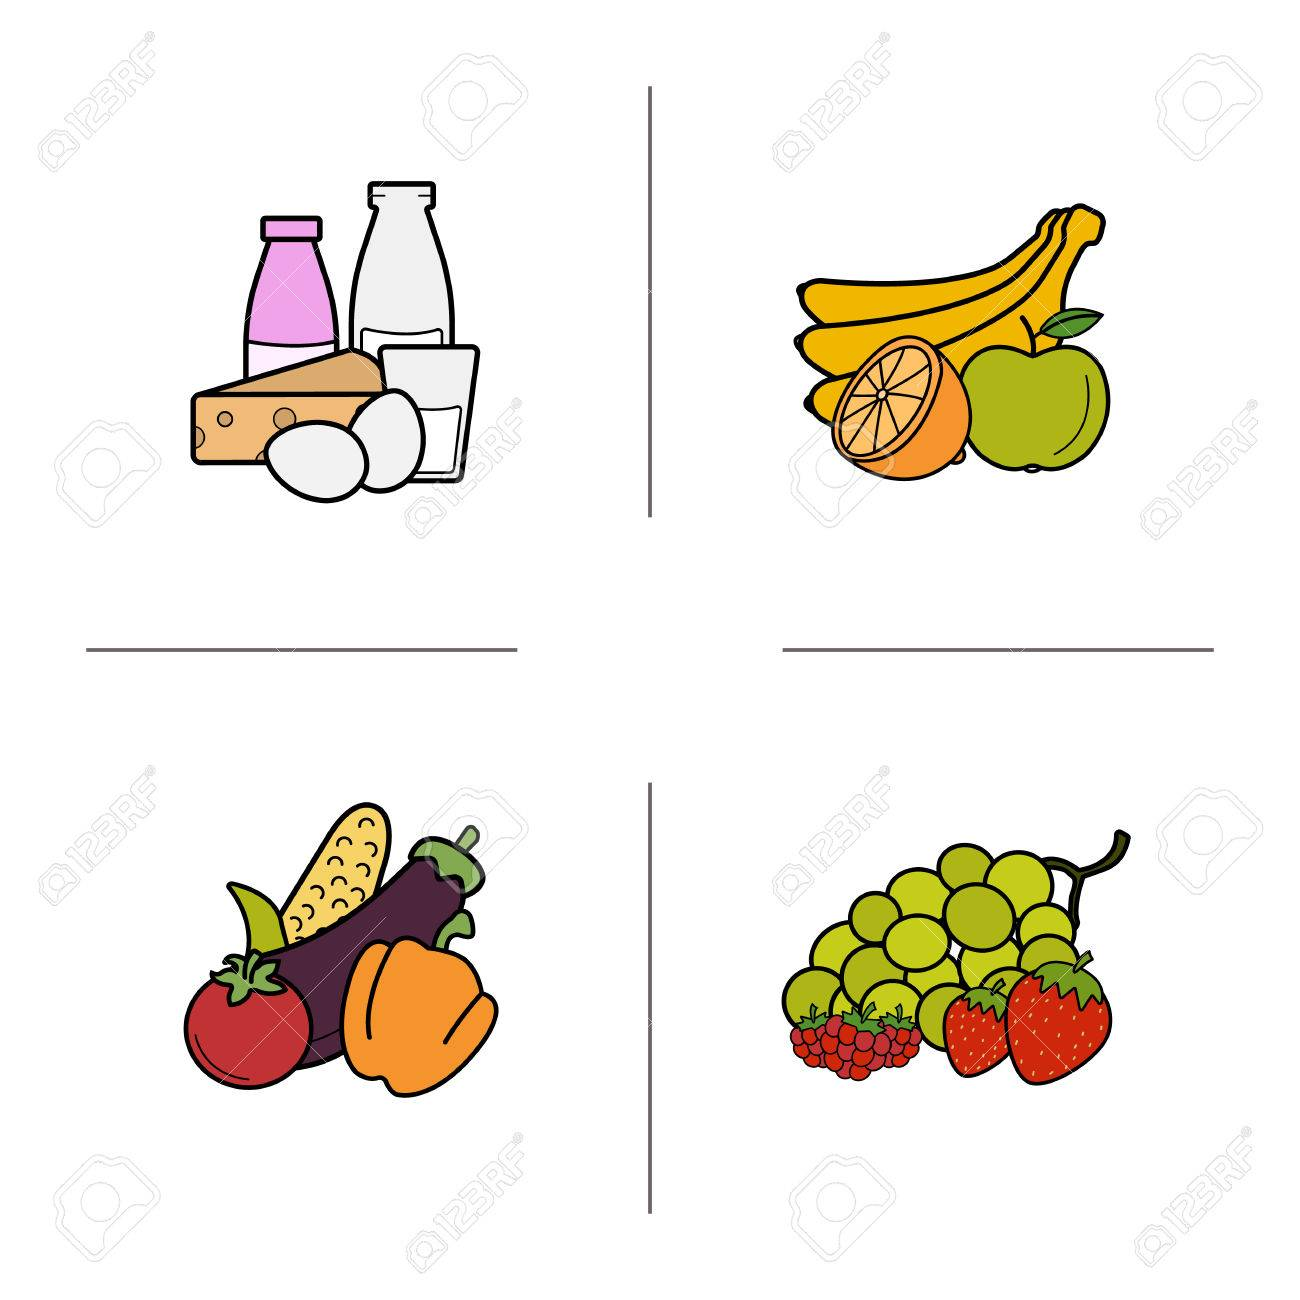 grocery store products categories color icons set fruit vegetables